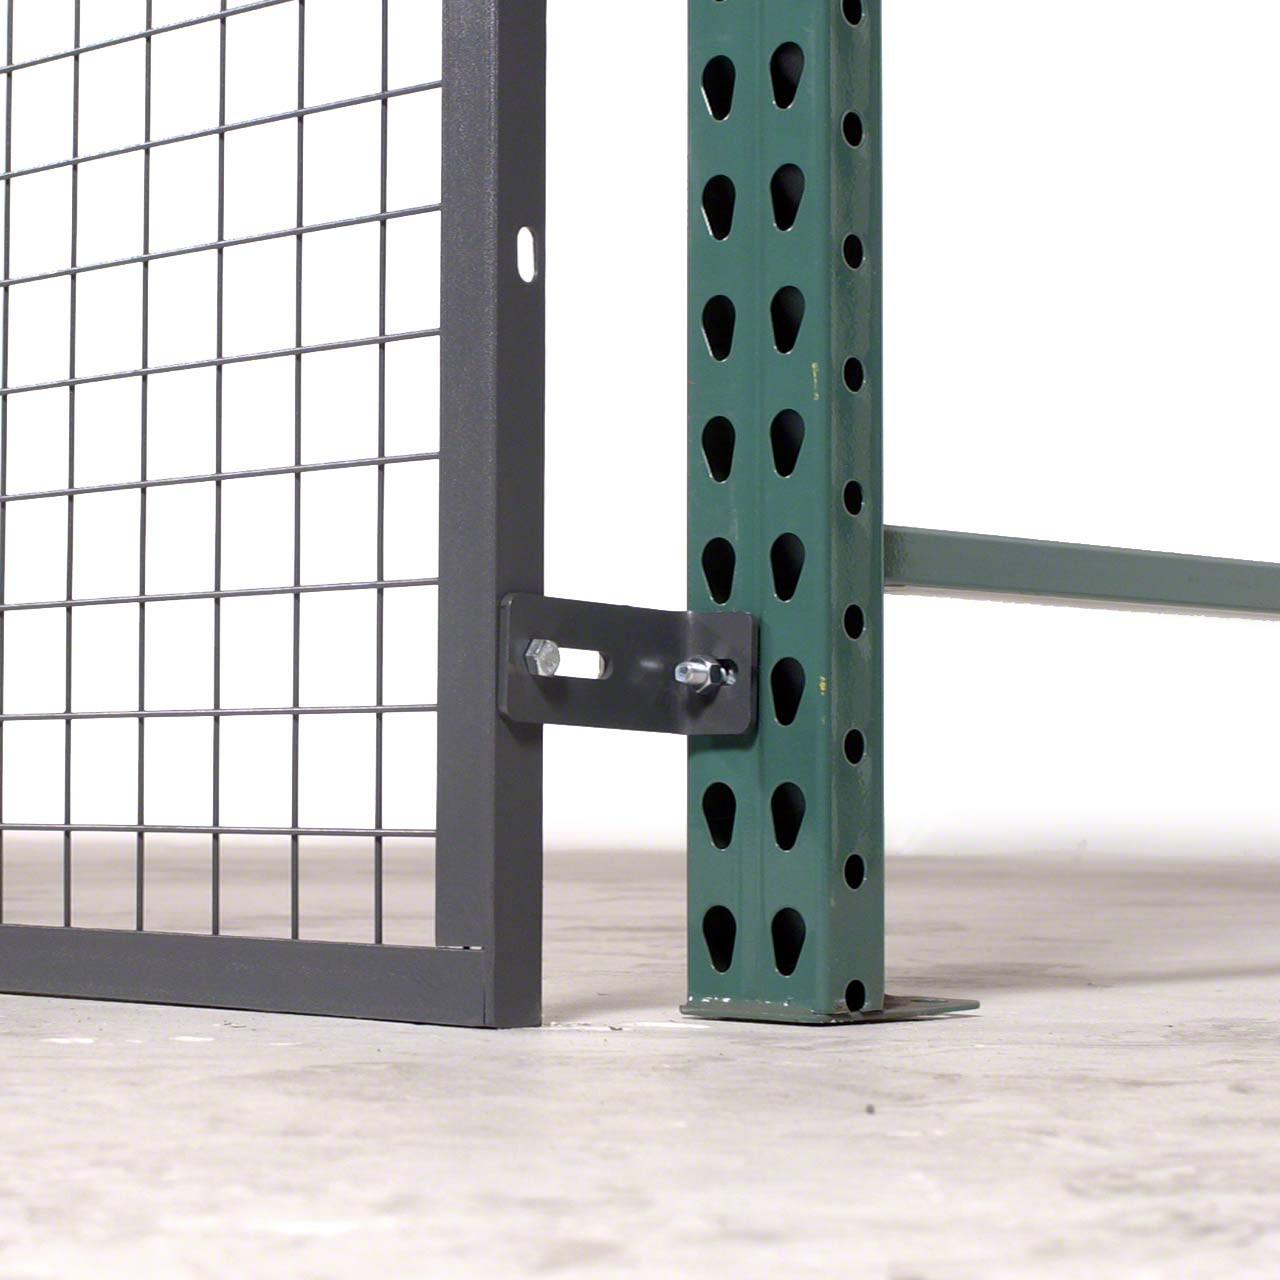 RackBack bolts onto your existing pallet rack to add a layer of protection